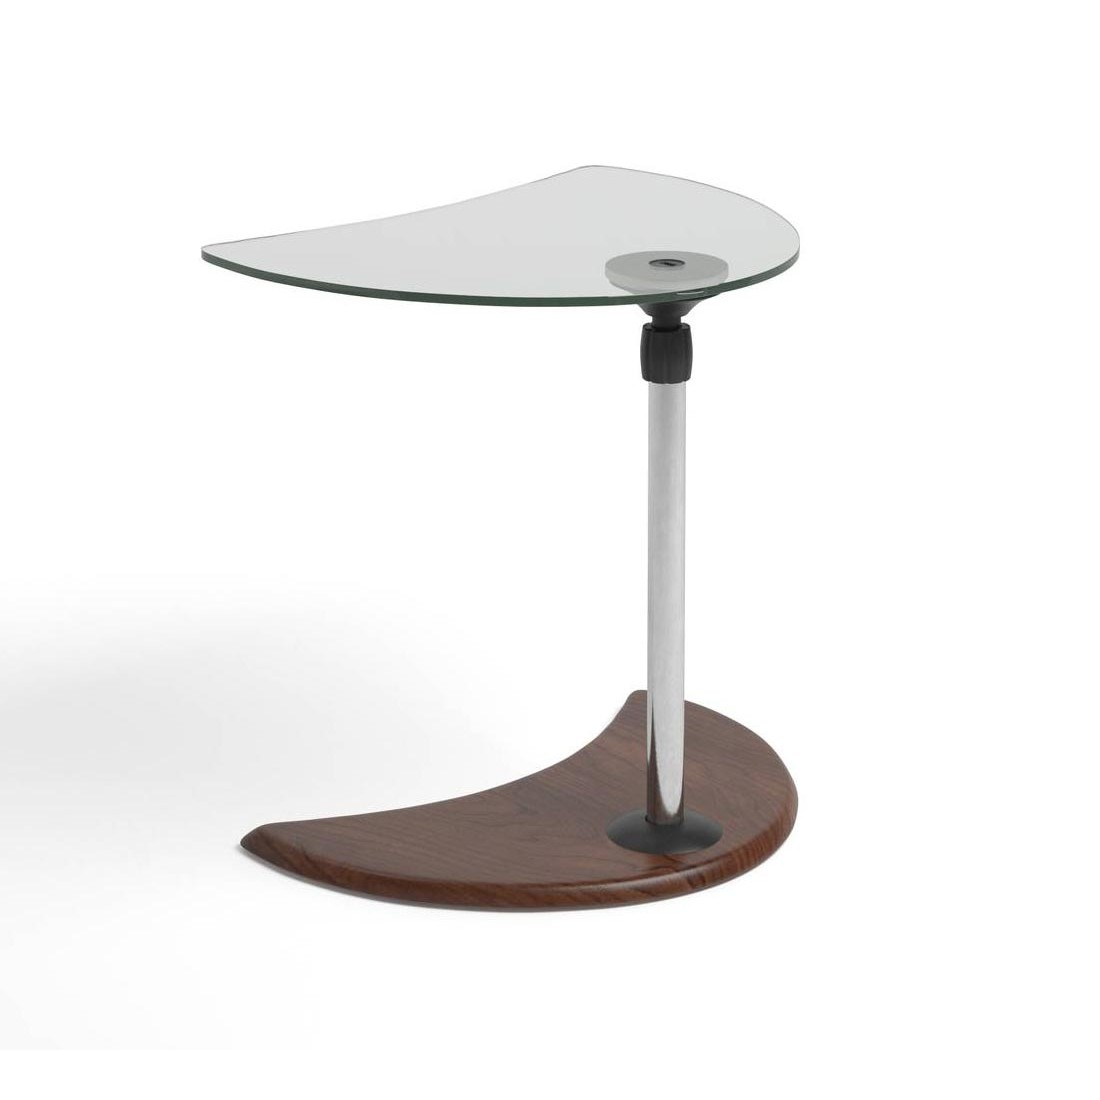 accent tables living furniture danco modern just strl alpha table chrome glass brown cherry corner stressless innovative coffee fabric placemats and napkins tiffany lighting